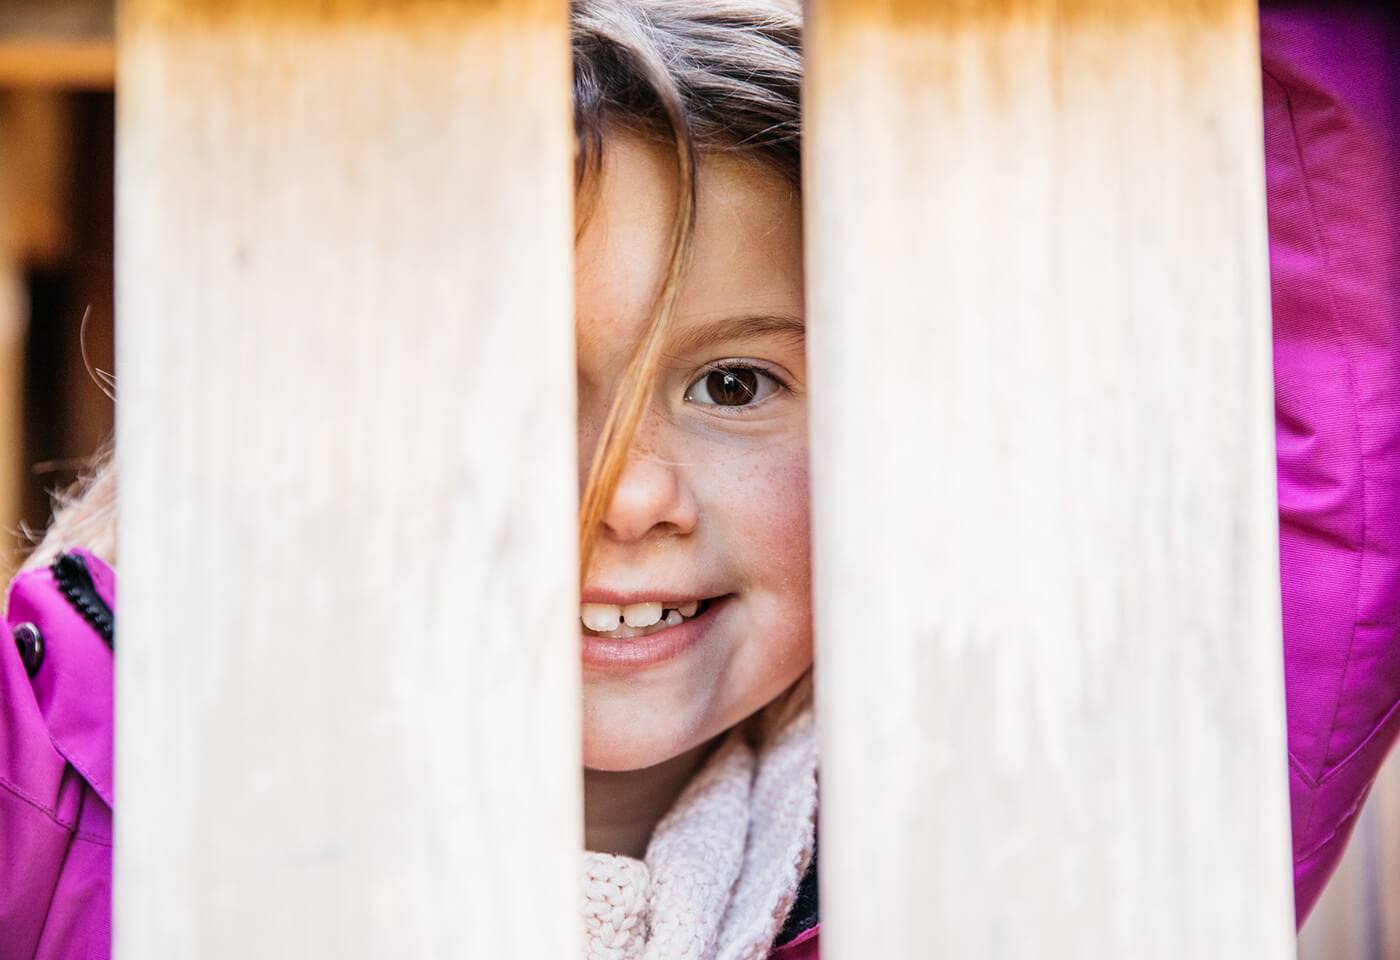 Image of child smiling